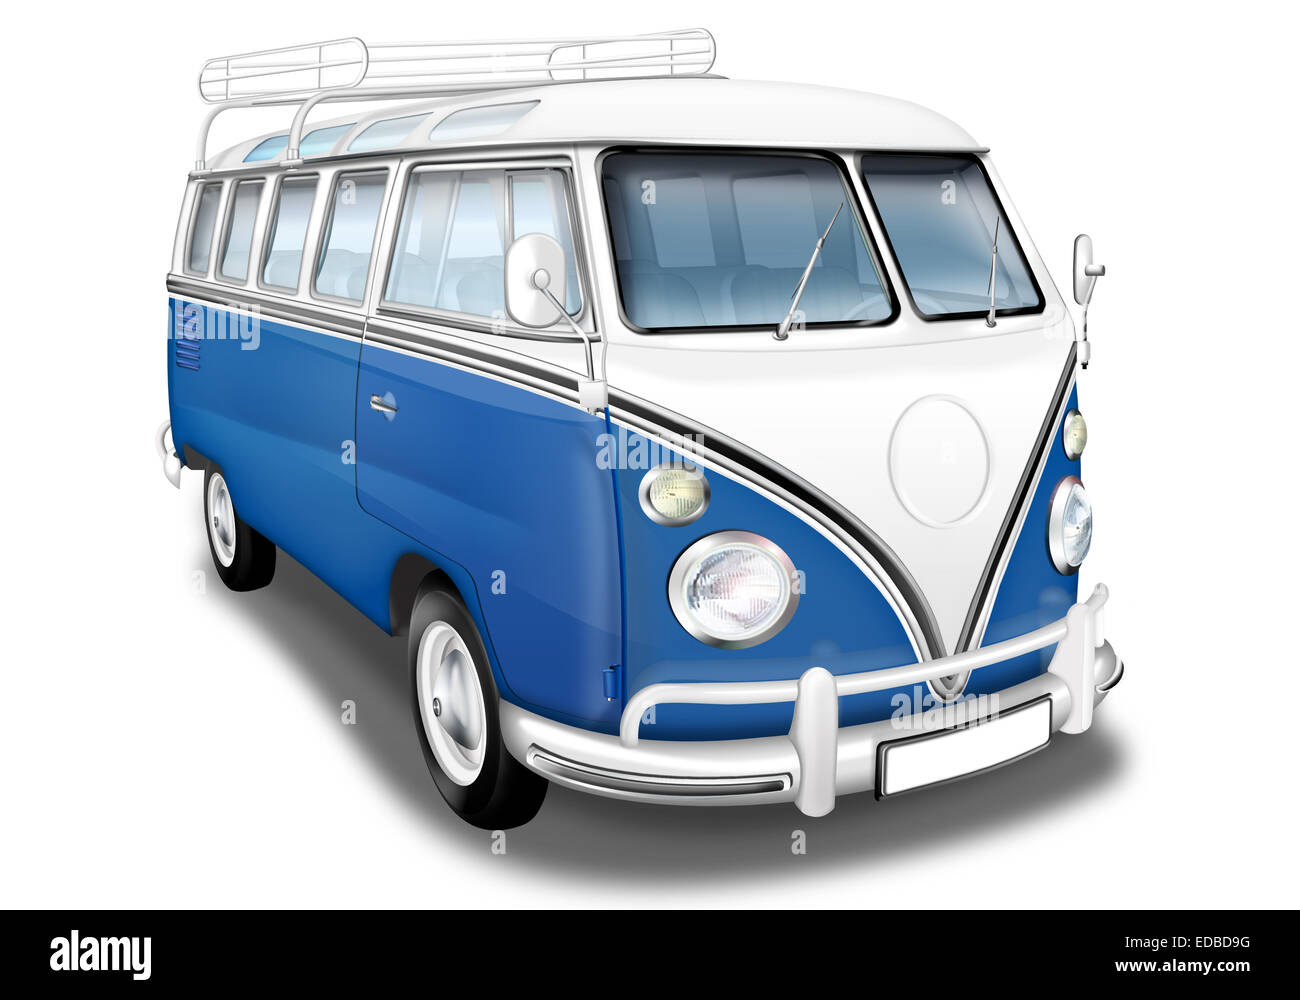 vw bus vw bus t1 german vintage car as a camper blue and white stock photo royalty free. Black Bedroom Furniture Sets. Home Design Ideas